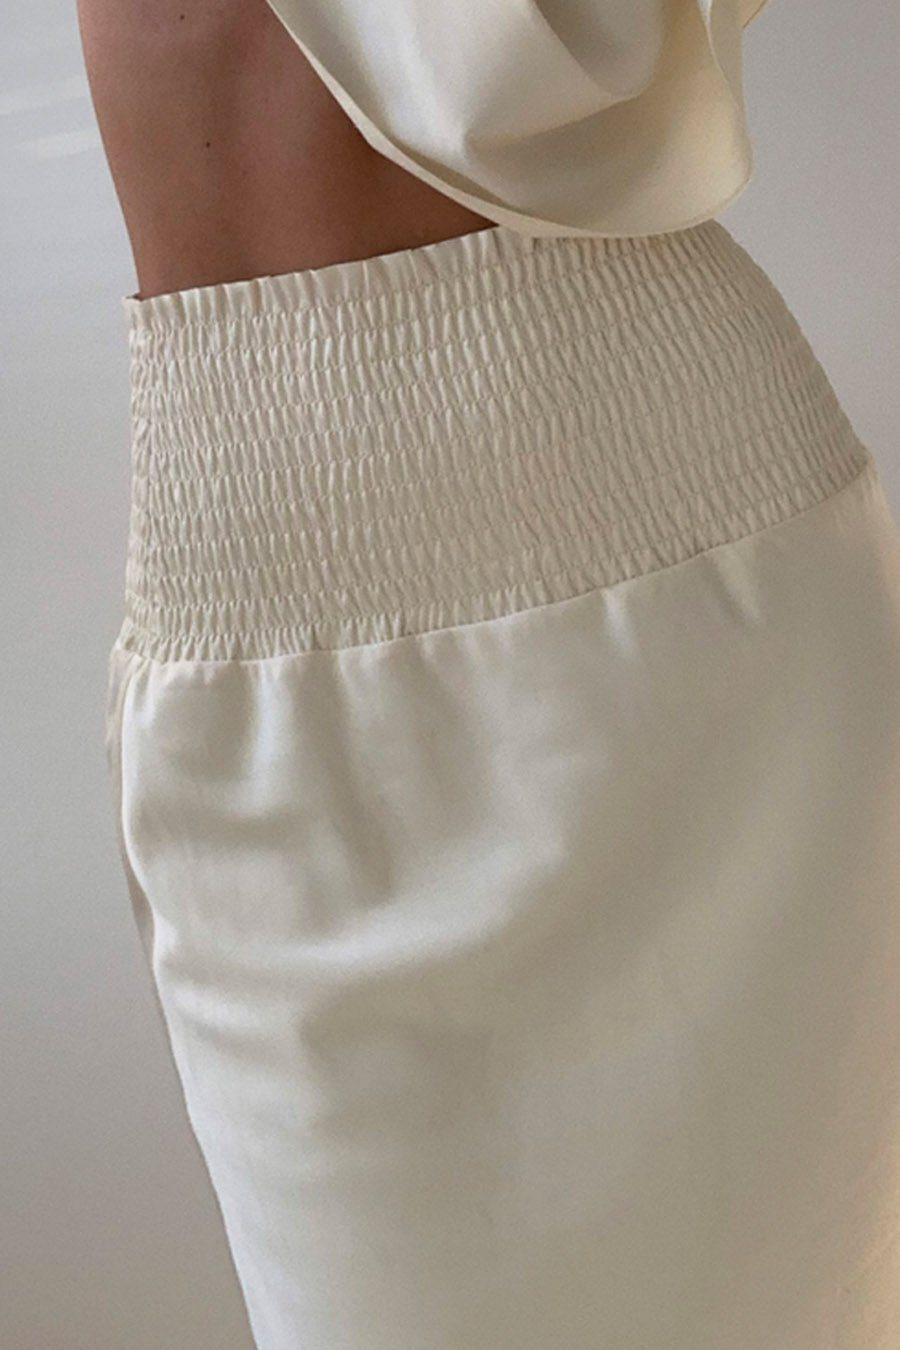 MARION SKIRT - OFF WHITE Skirt Stylein